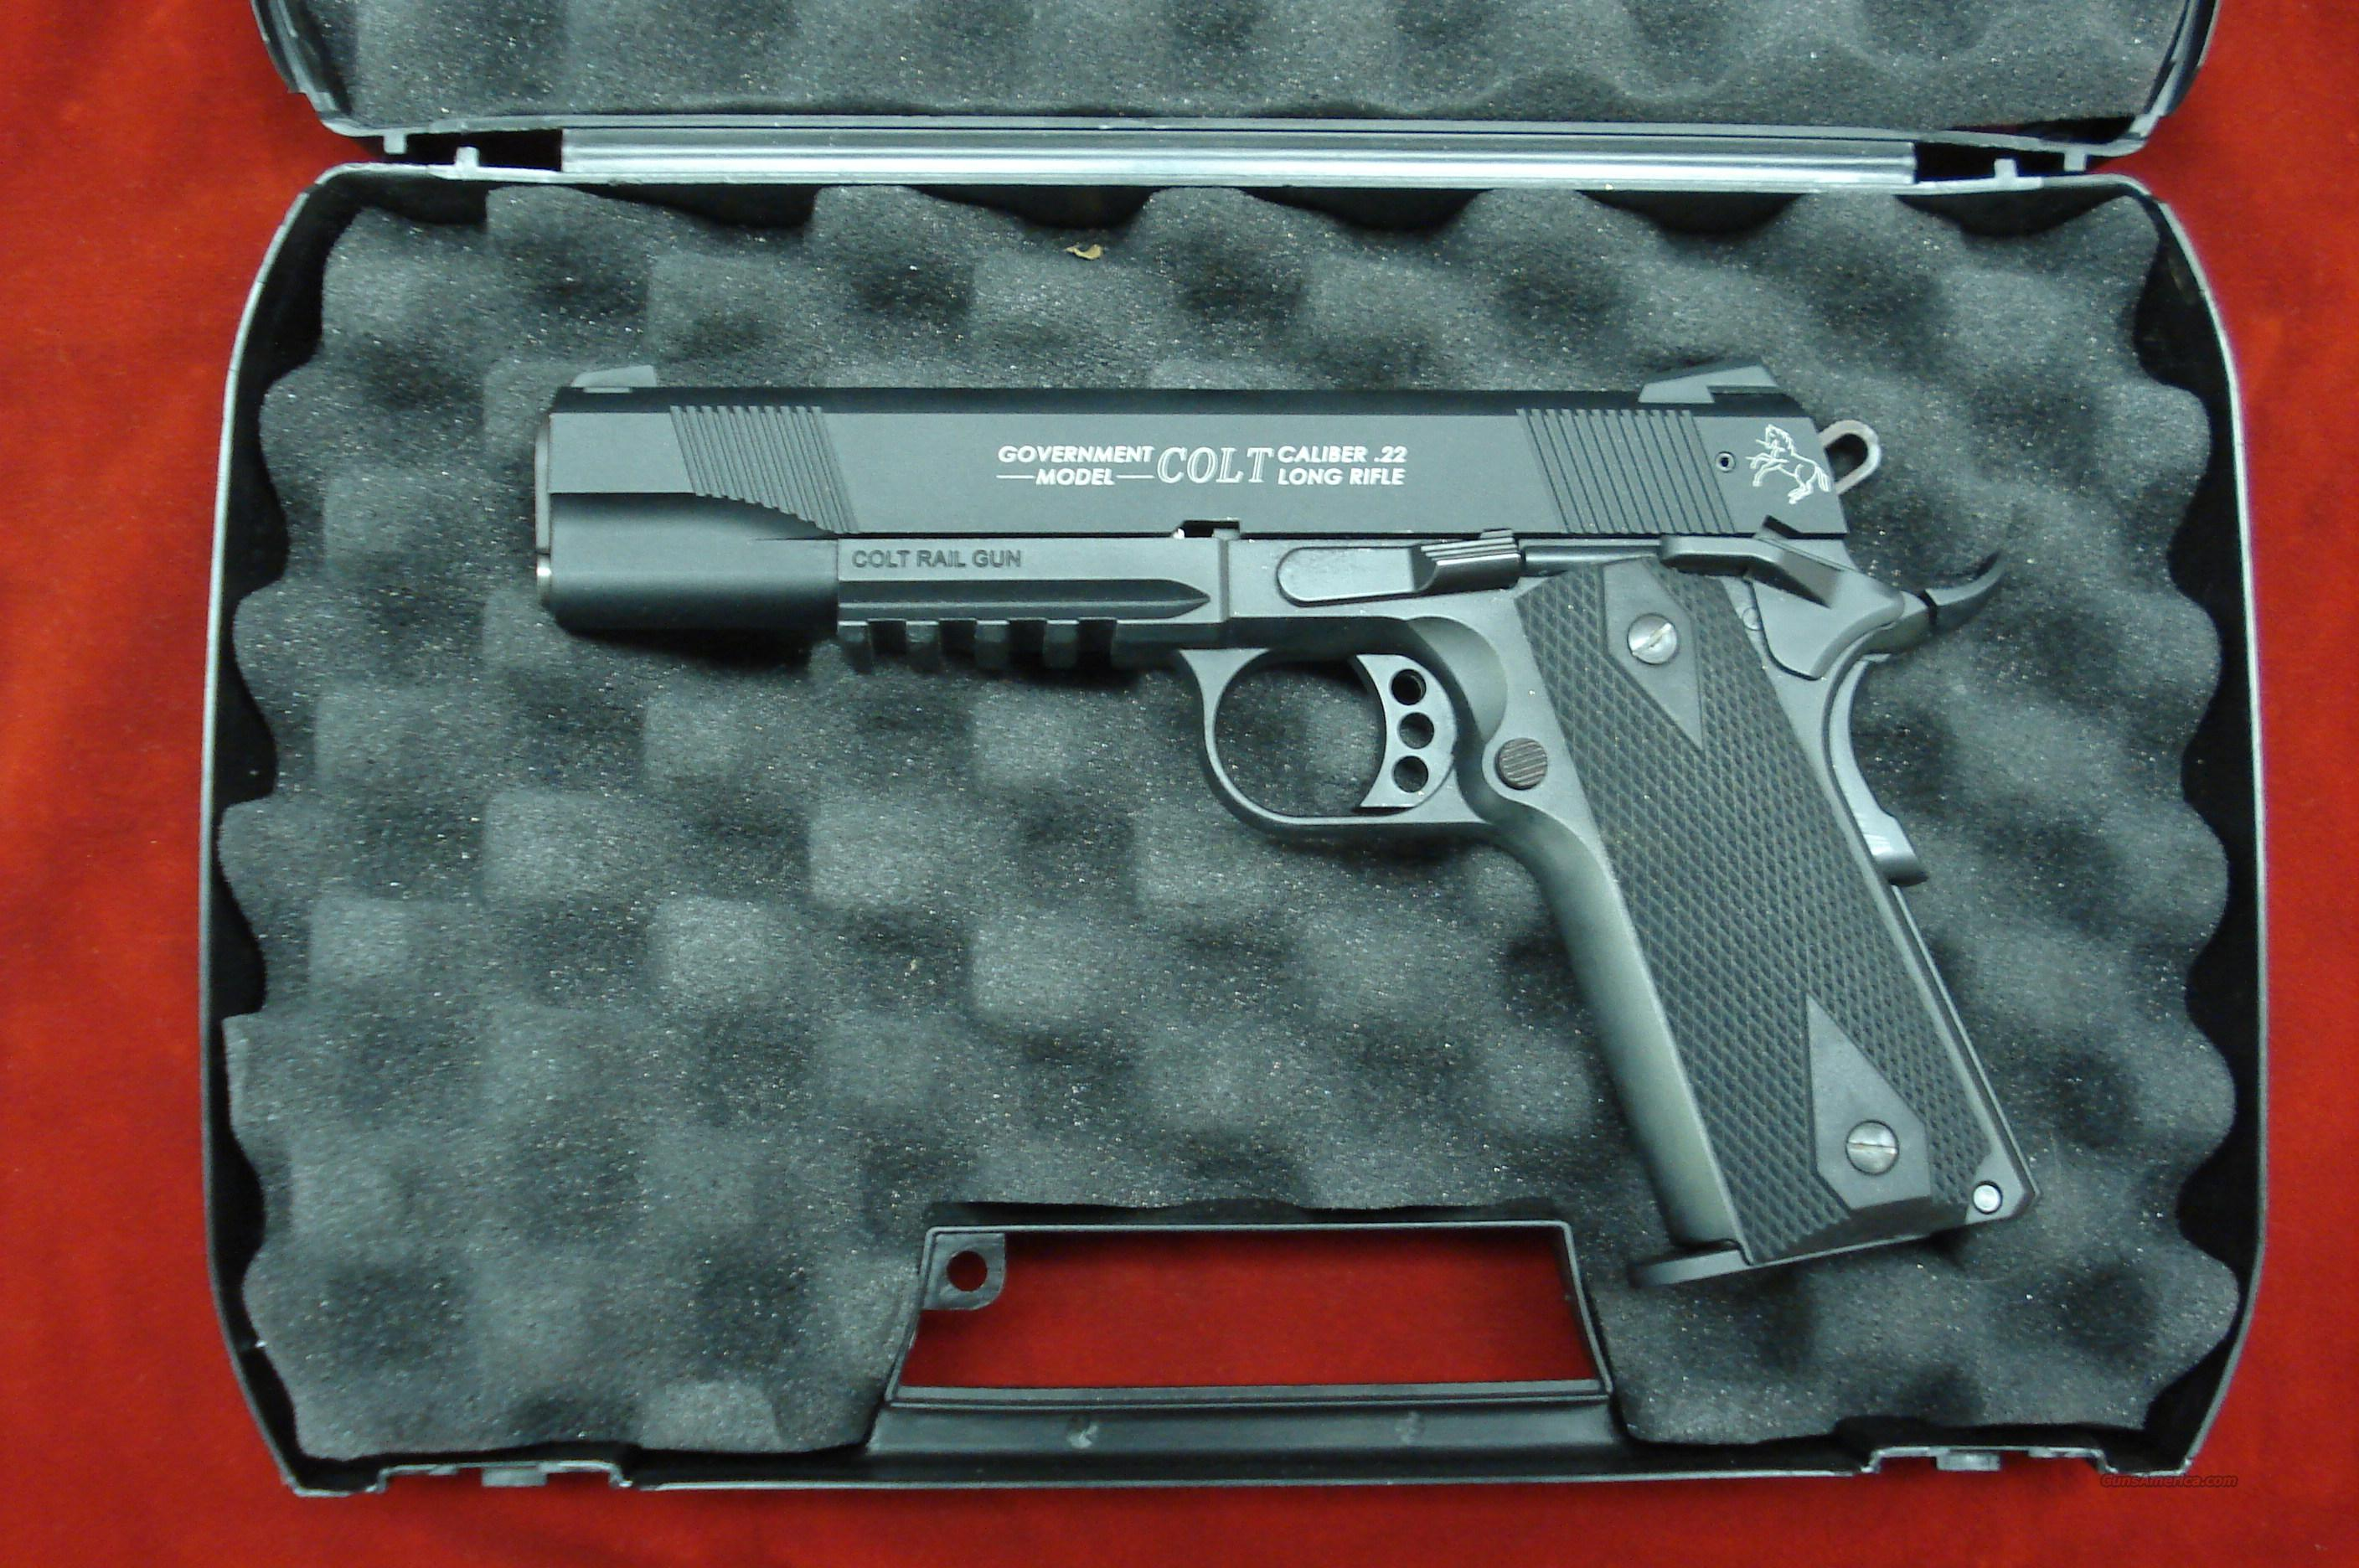 COLT UMAREX 1911 22CAL WITH TAC RAIL USED IN BOX   Guns > Pistols > Colt Automatic Pistols (22 Cal.)